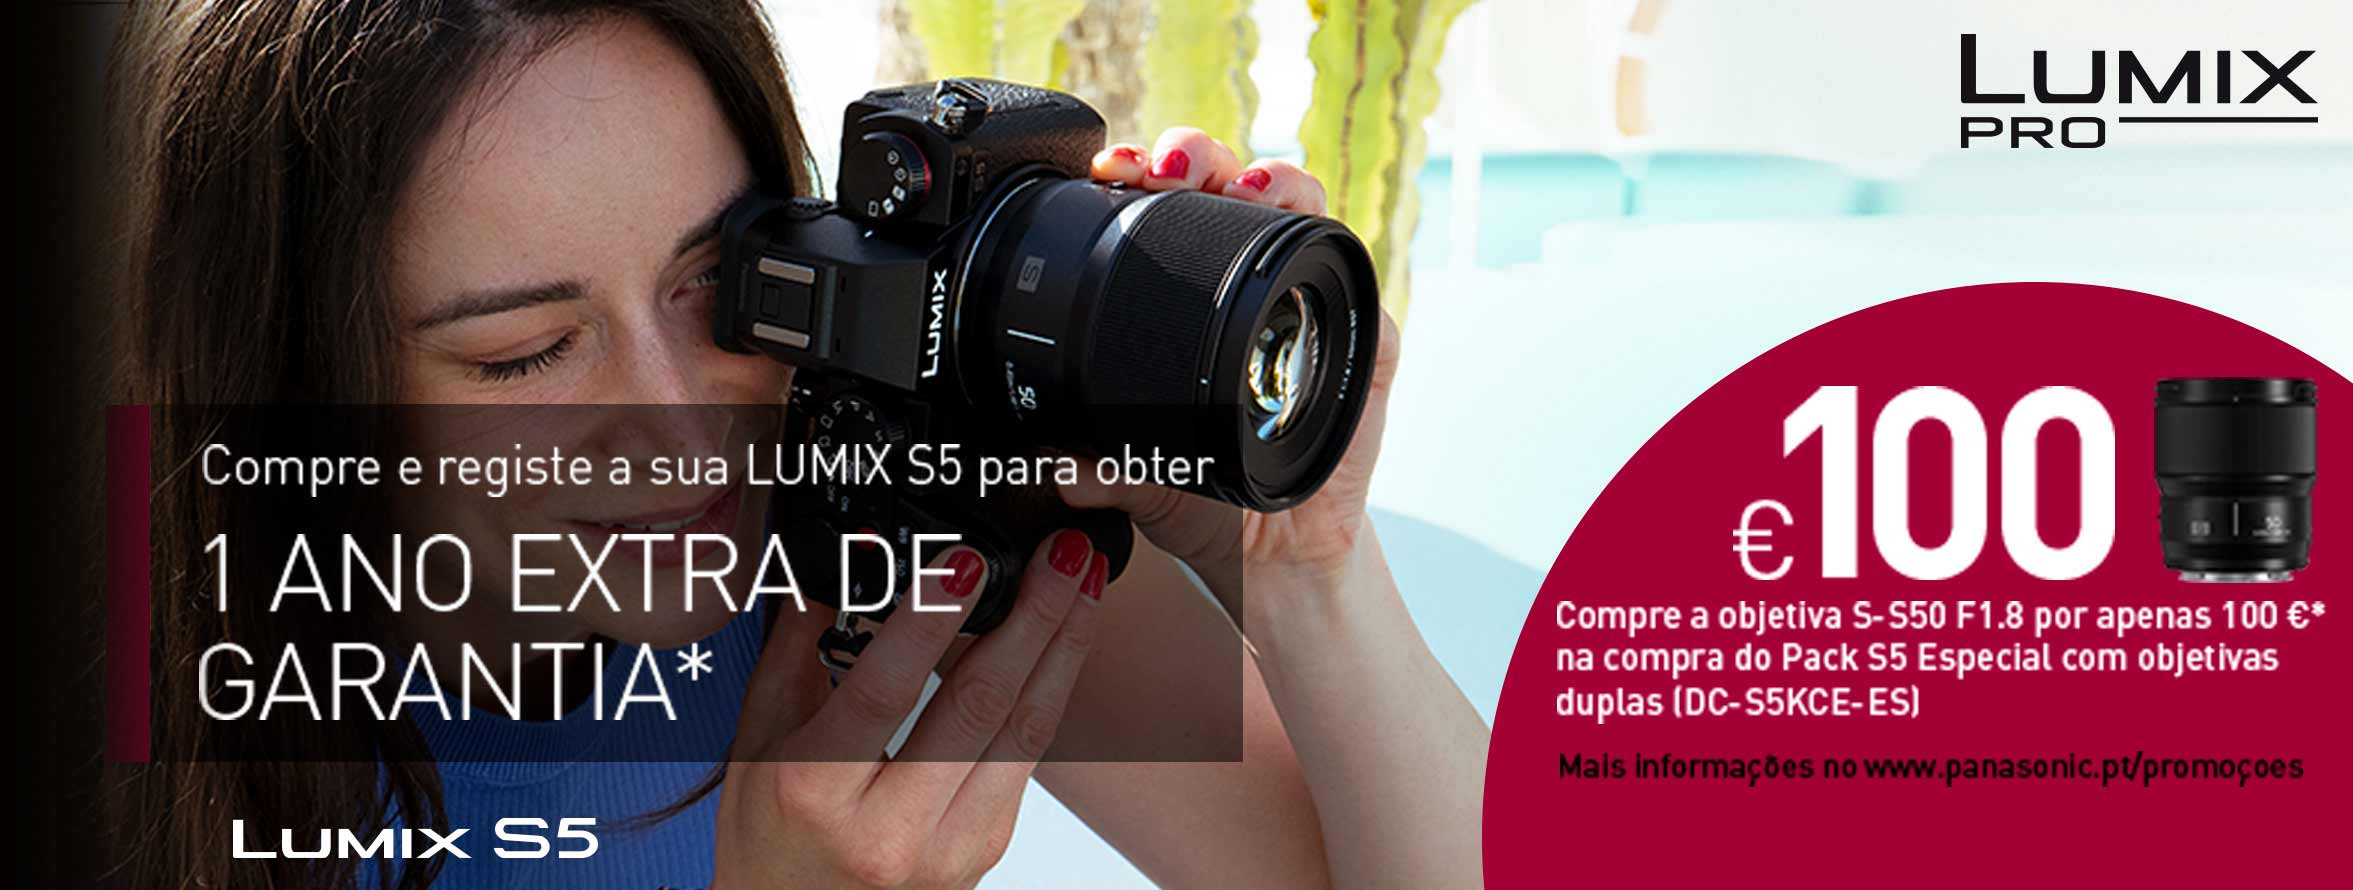 Pack Especial Lumix S5 Coloreffects